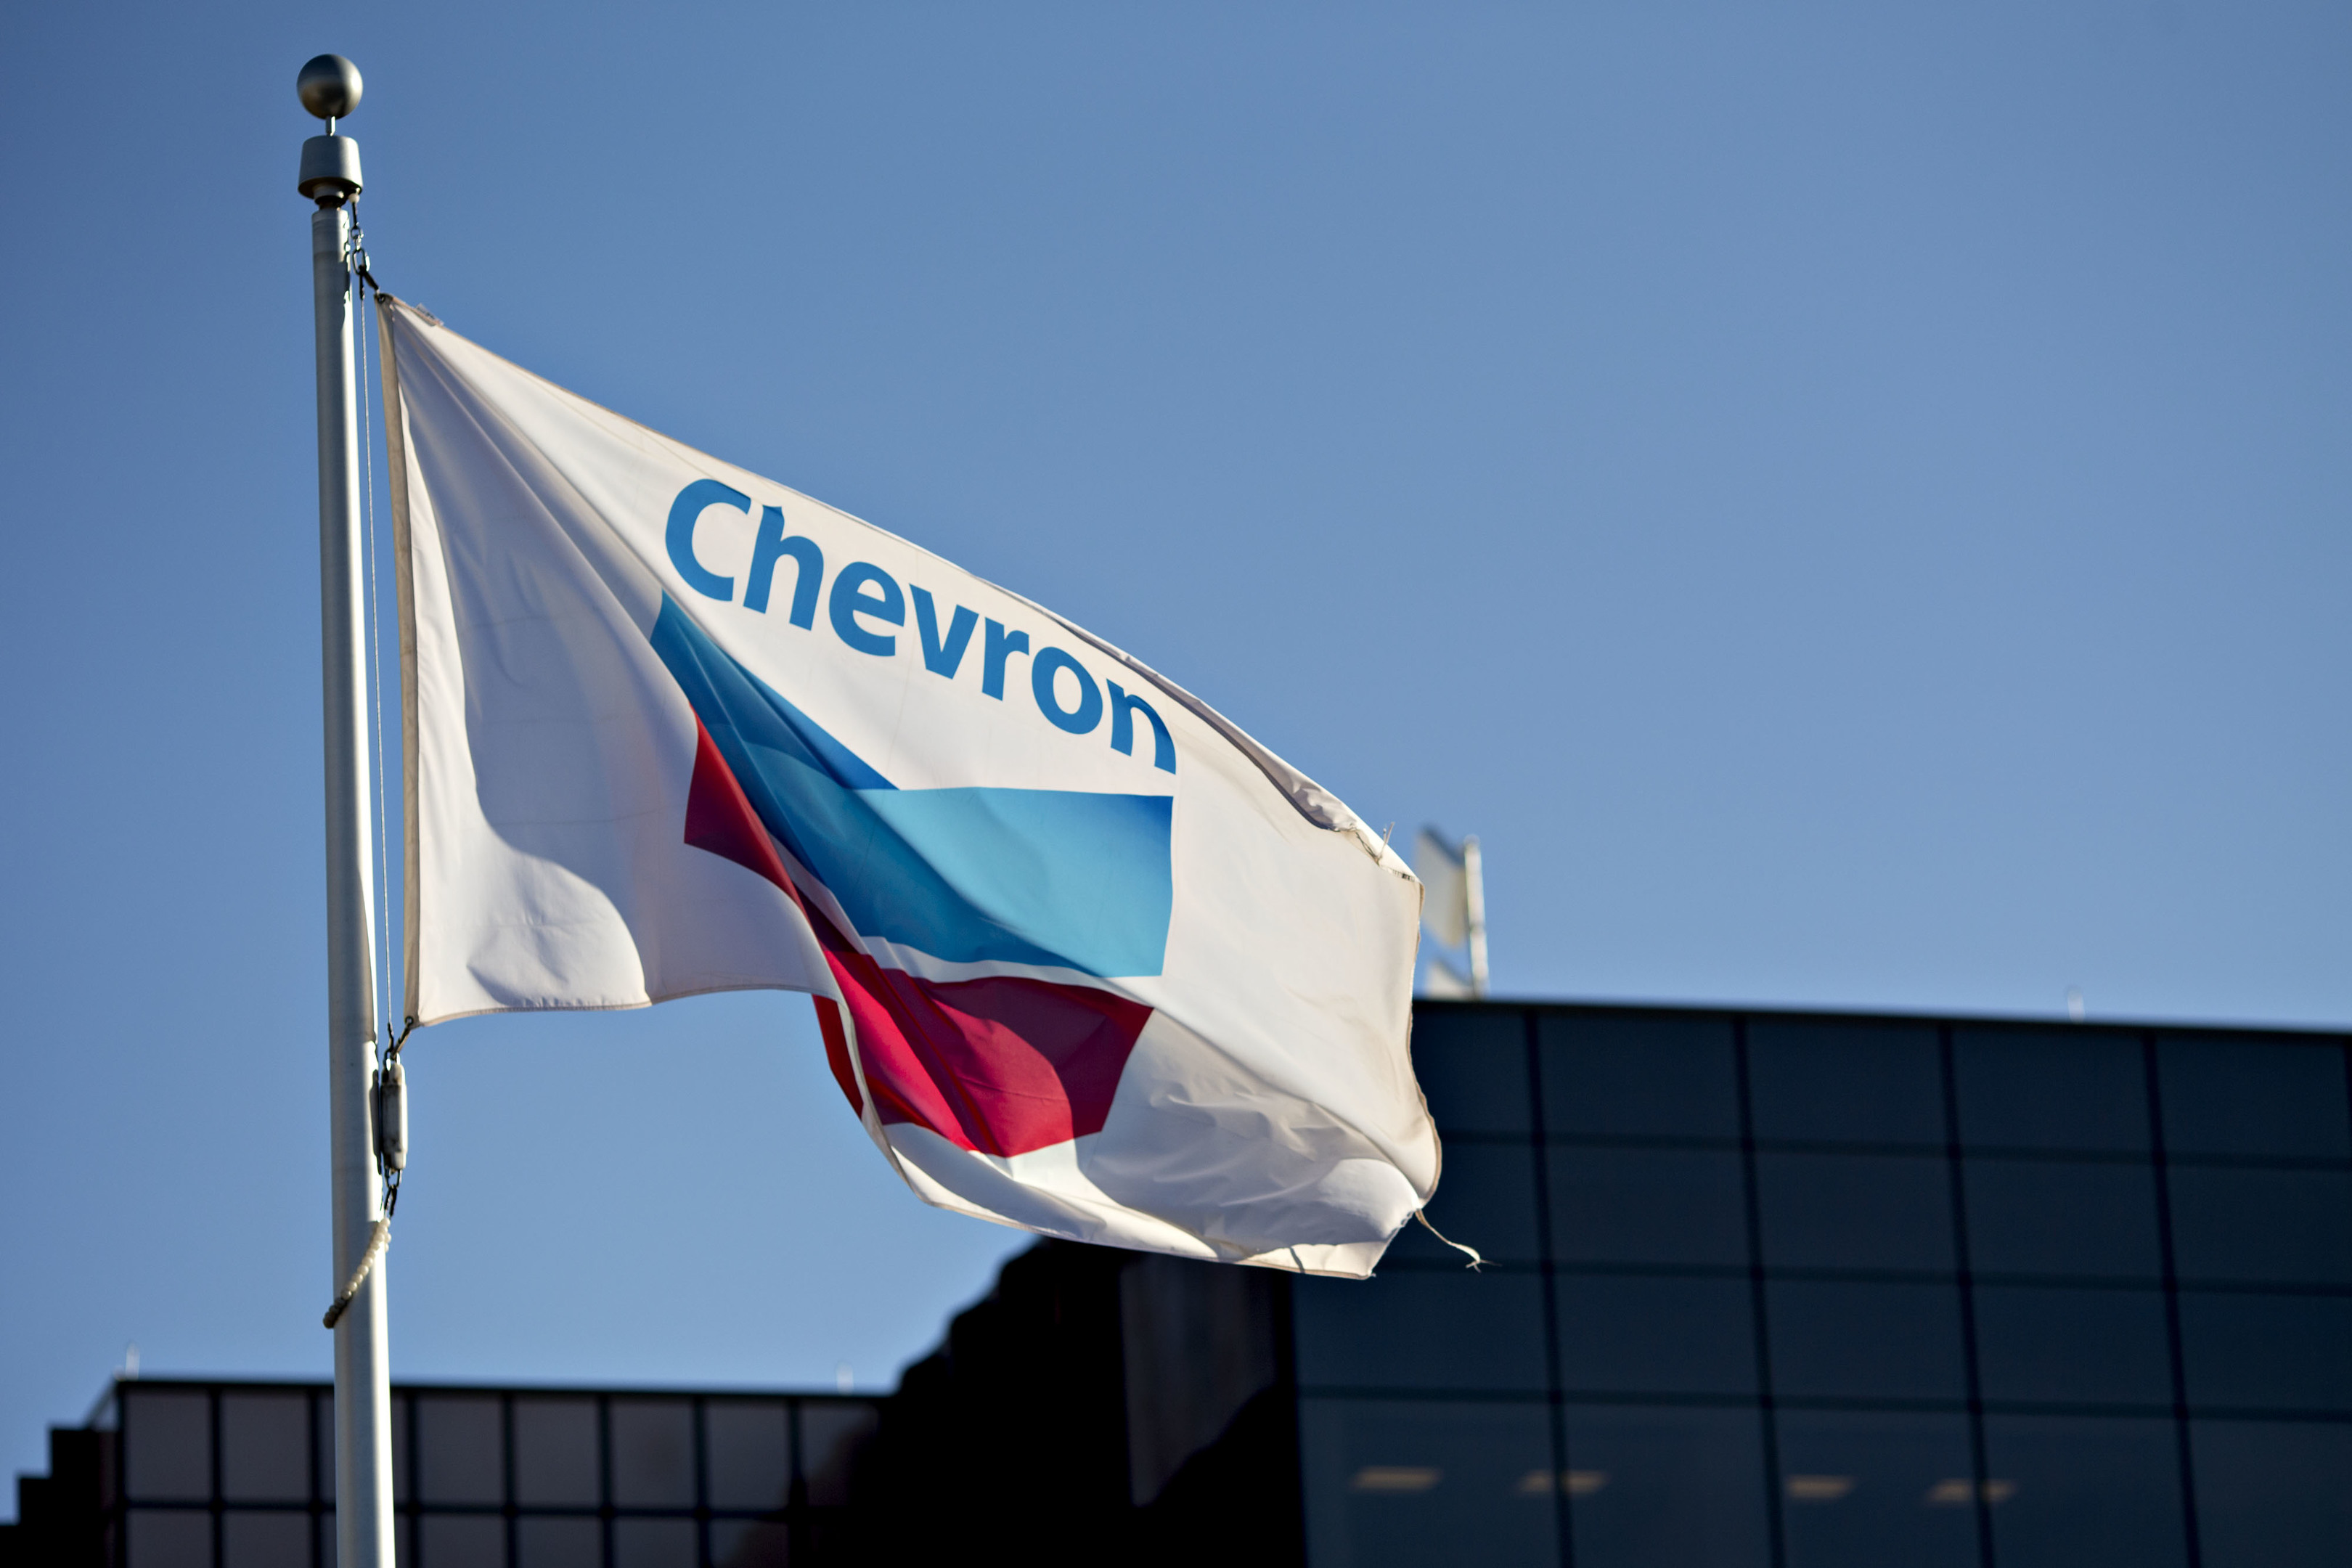 Chevron is buying Noble Energy in an all-share deal worth $5 billion.